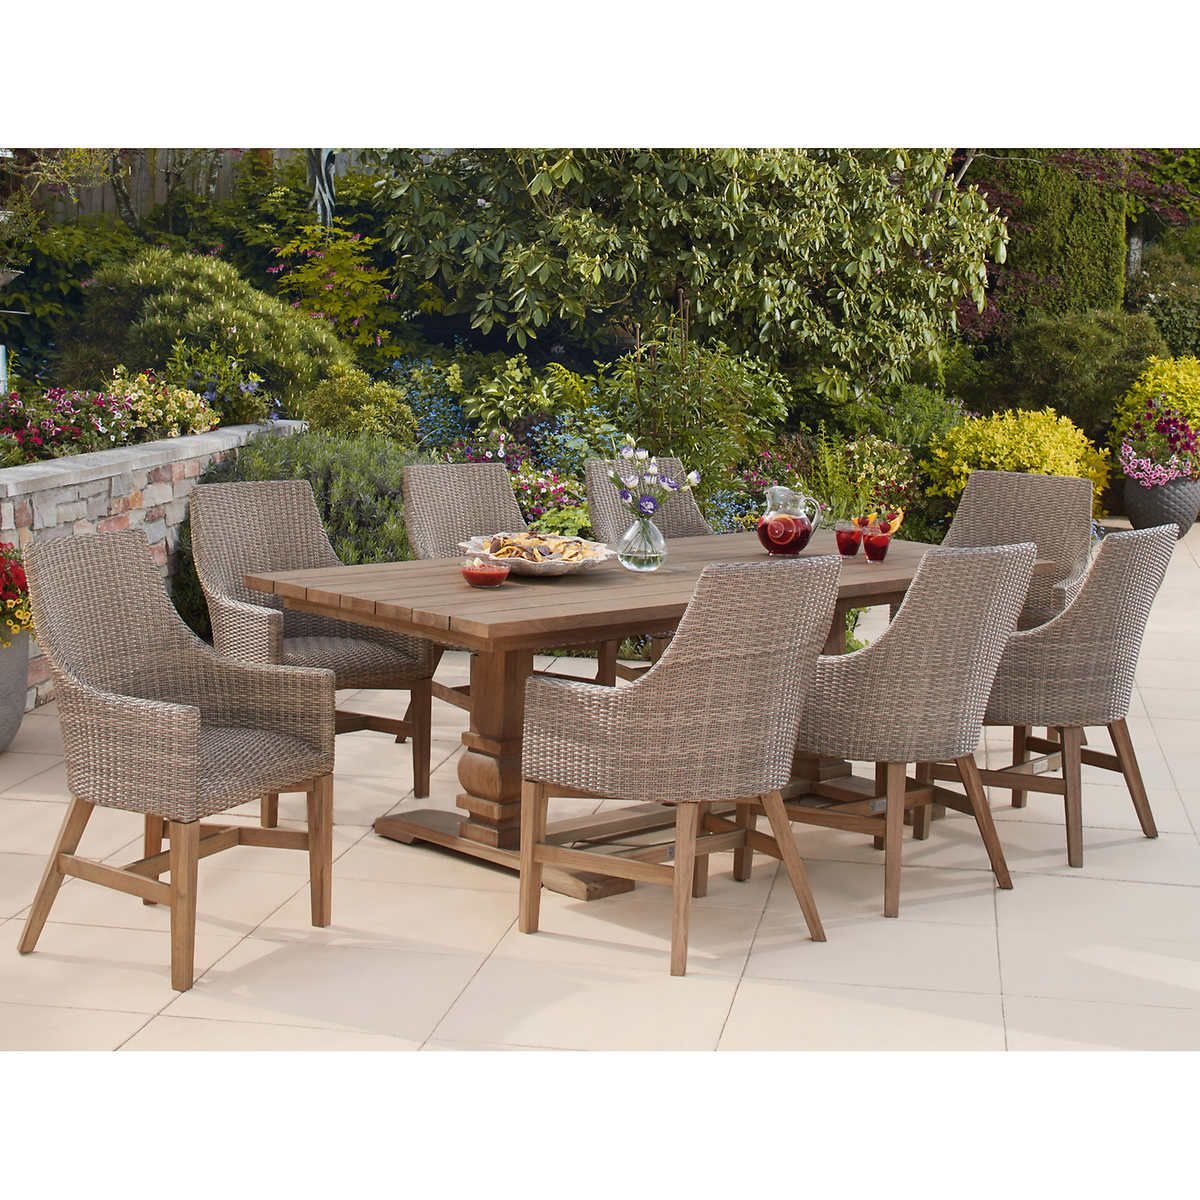 9 Piece Teak Dining Set Muebles Terraza Muebles Reciclados Decoracion De Interiores